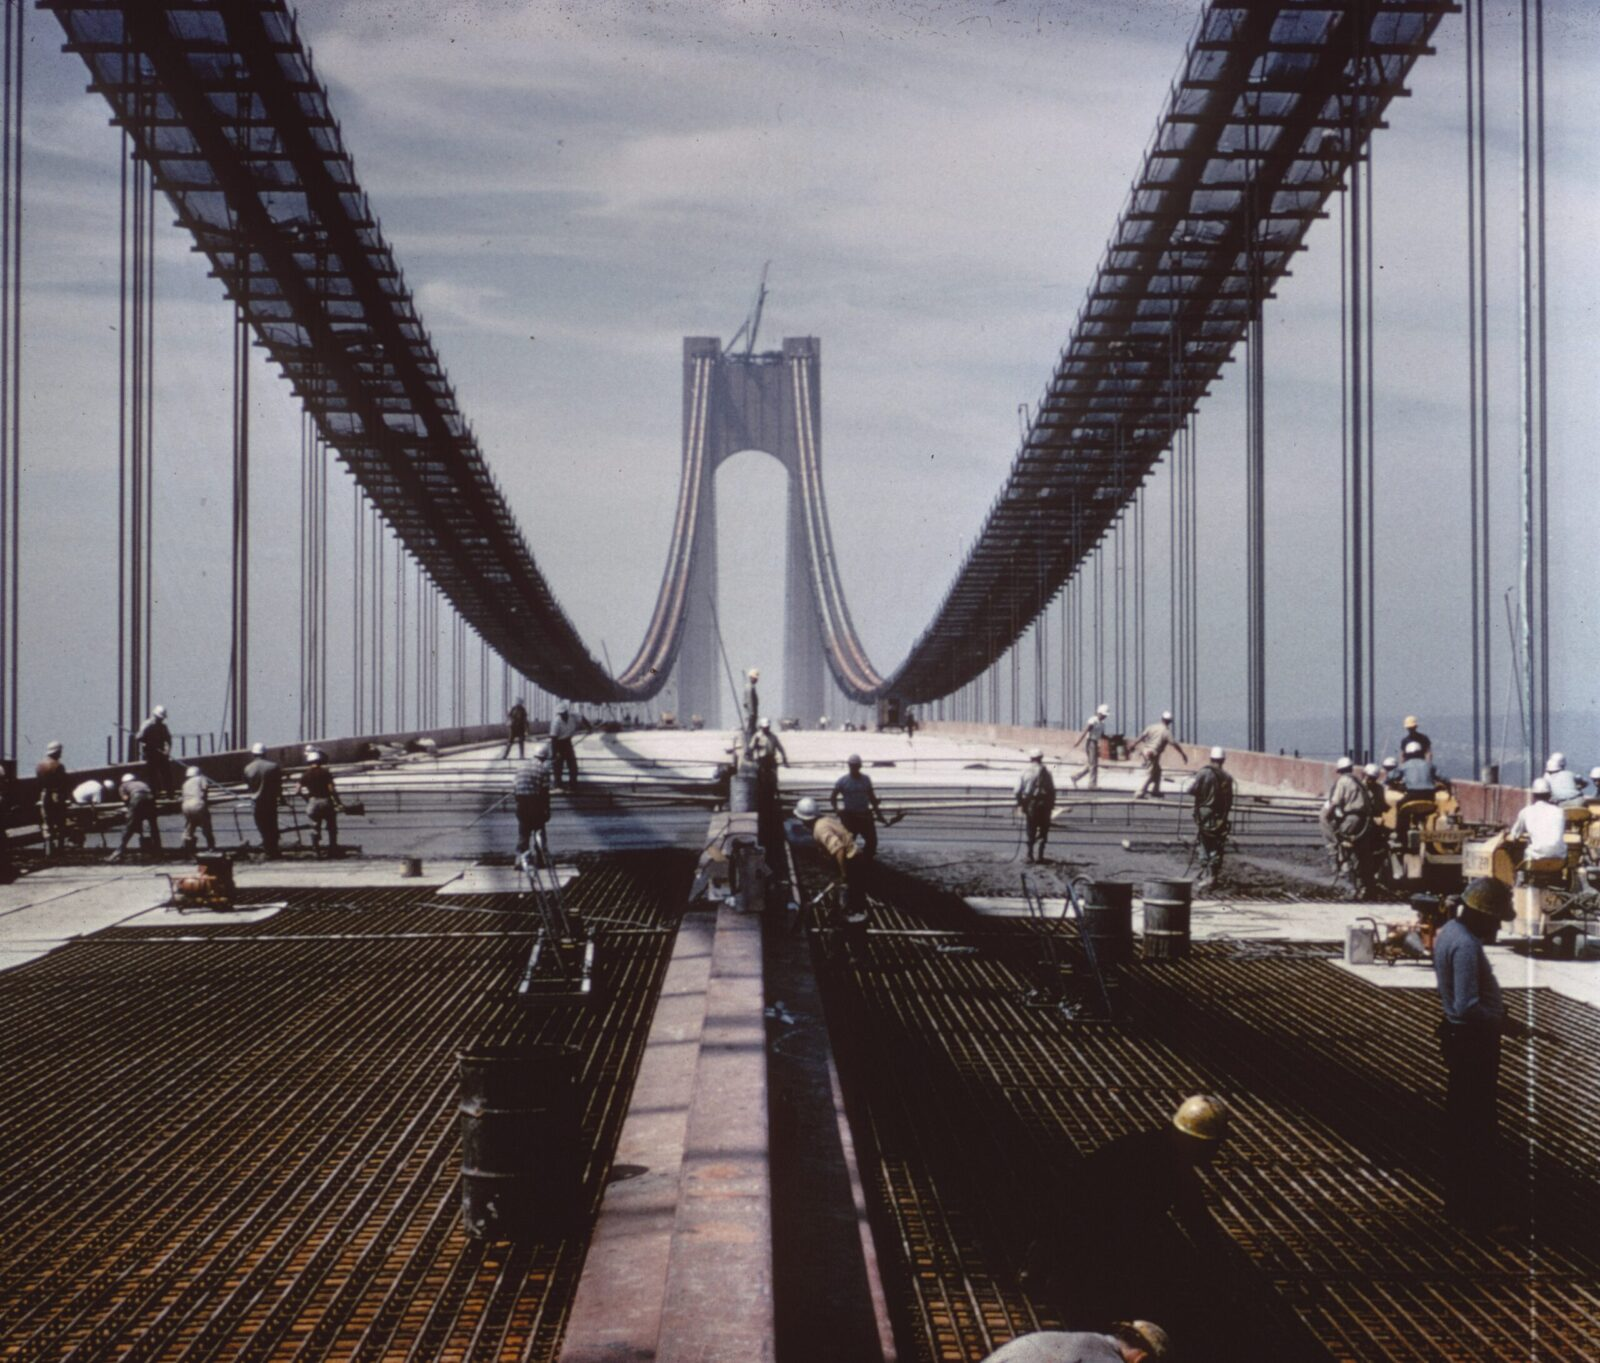 The Verrazzano-Narrows Bridge during construction in 1964: more than 12,000 workers used a total of 200,000 kilometres of steel wire to make the bearing cables.